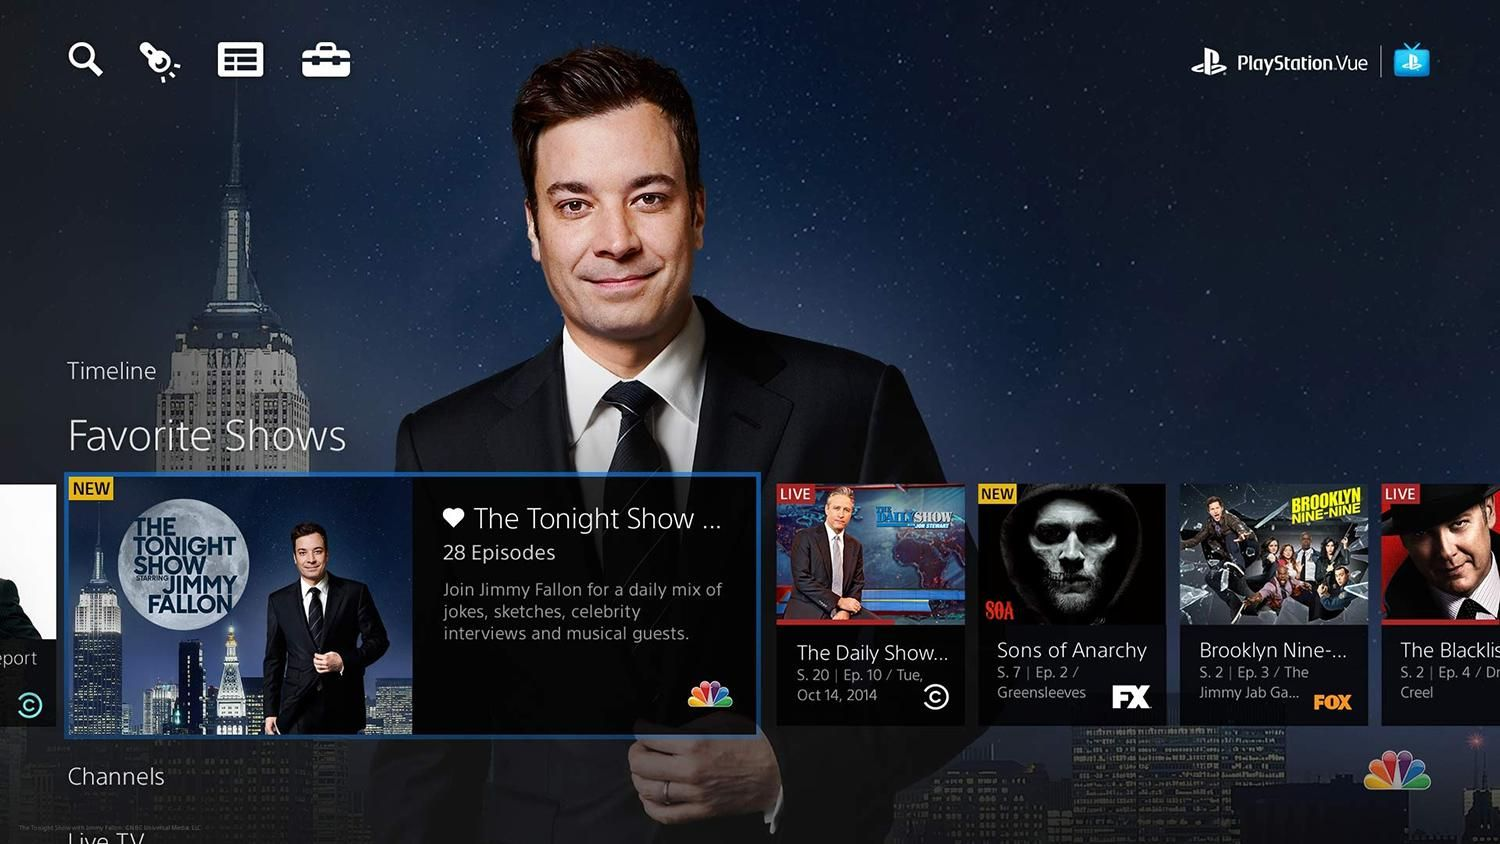 Playstation Vue Brings Live Tv To Amazon Fire Tv Fire Tv Stick Playstation Netflix Technologie